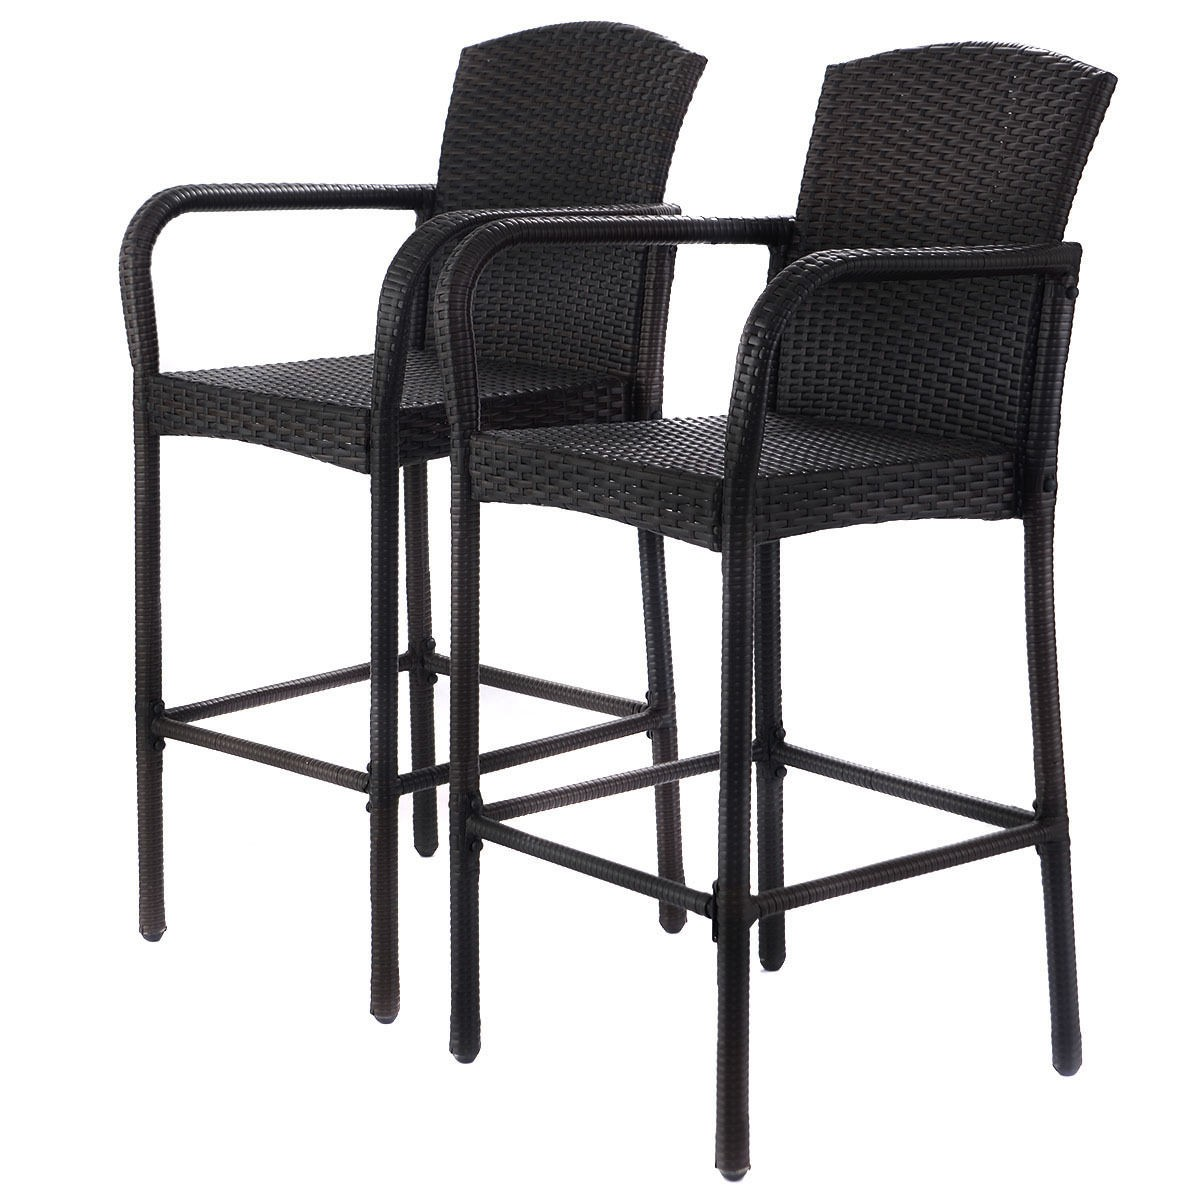 Wicker Chair Barstool Tall High Backrest Patio Furniture: 2 PCS Rattan Wicker Bar Stool High Counter Chair Outdoor